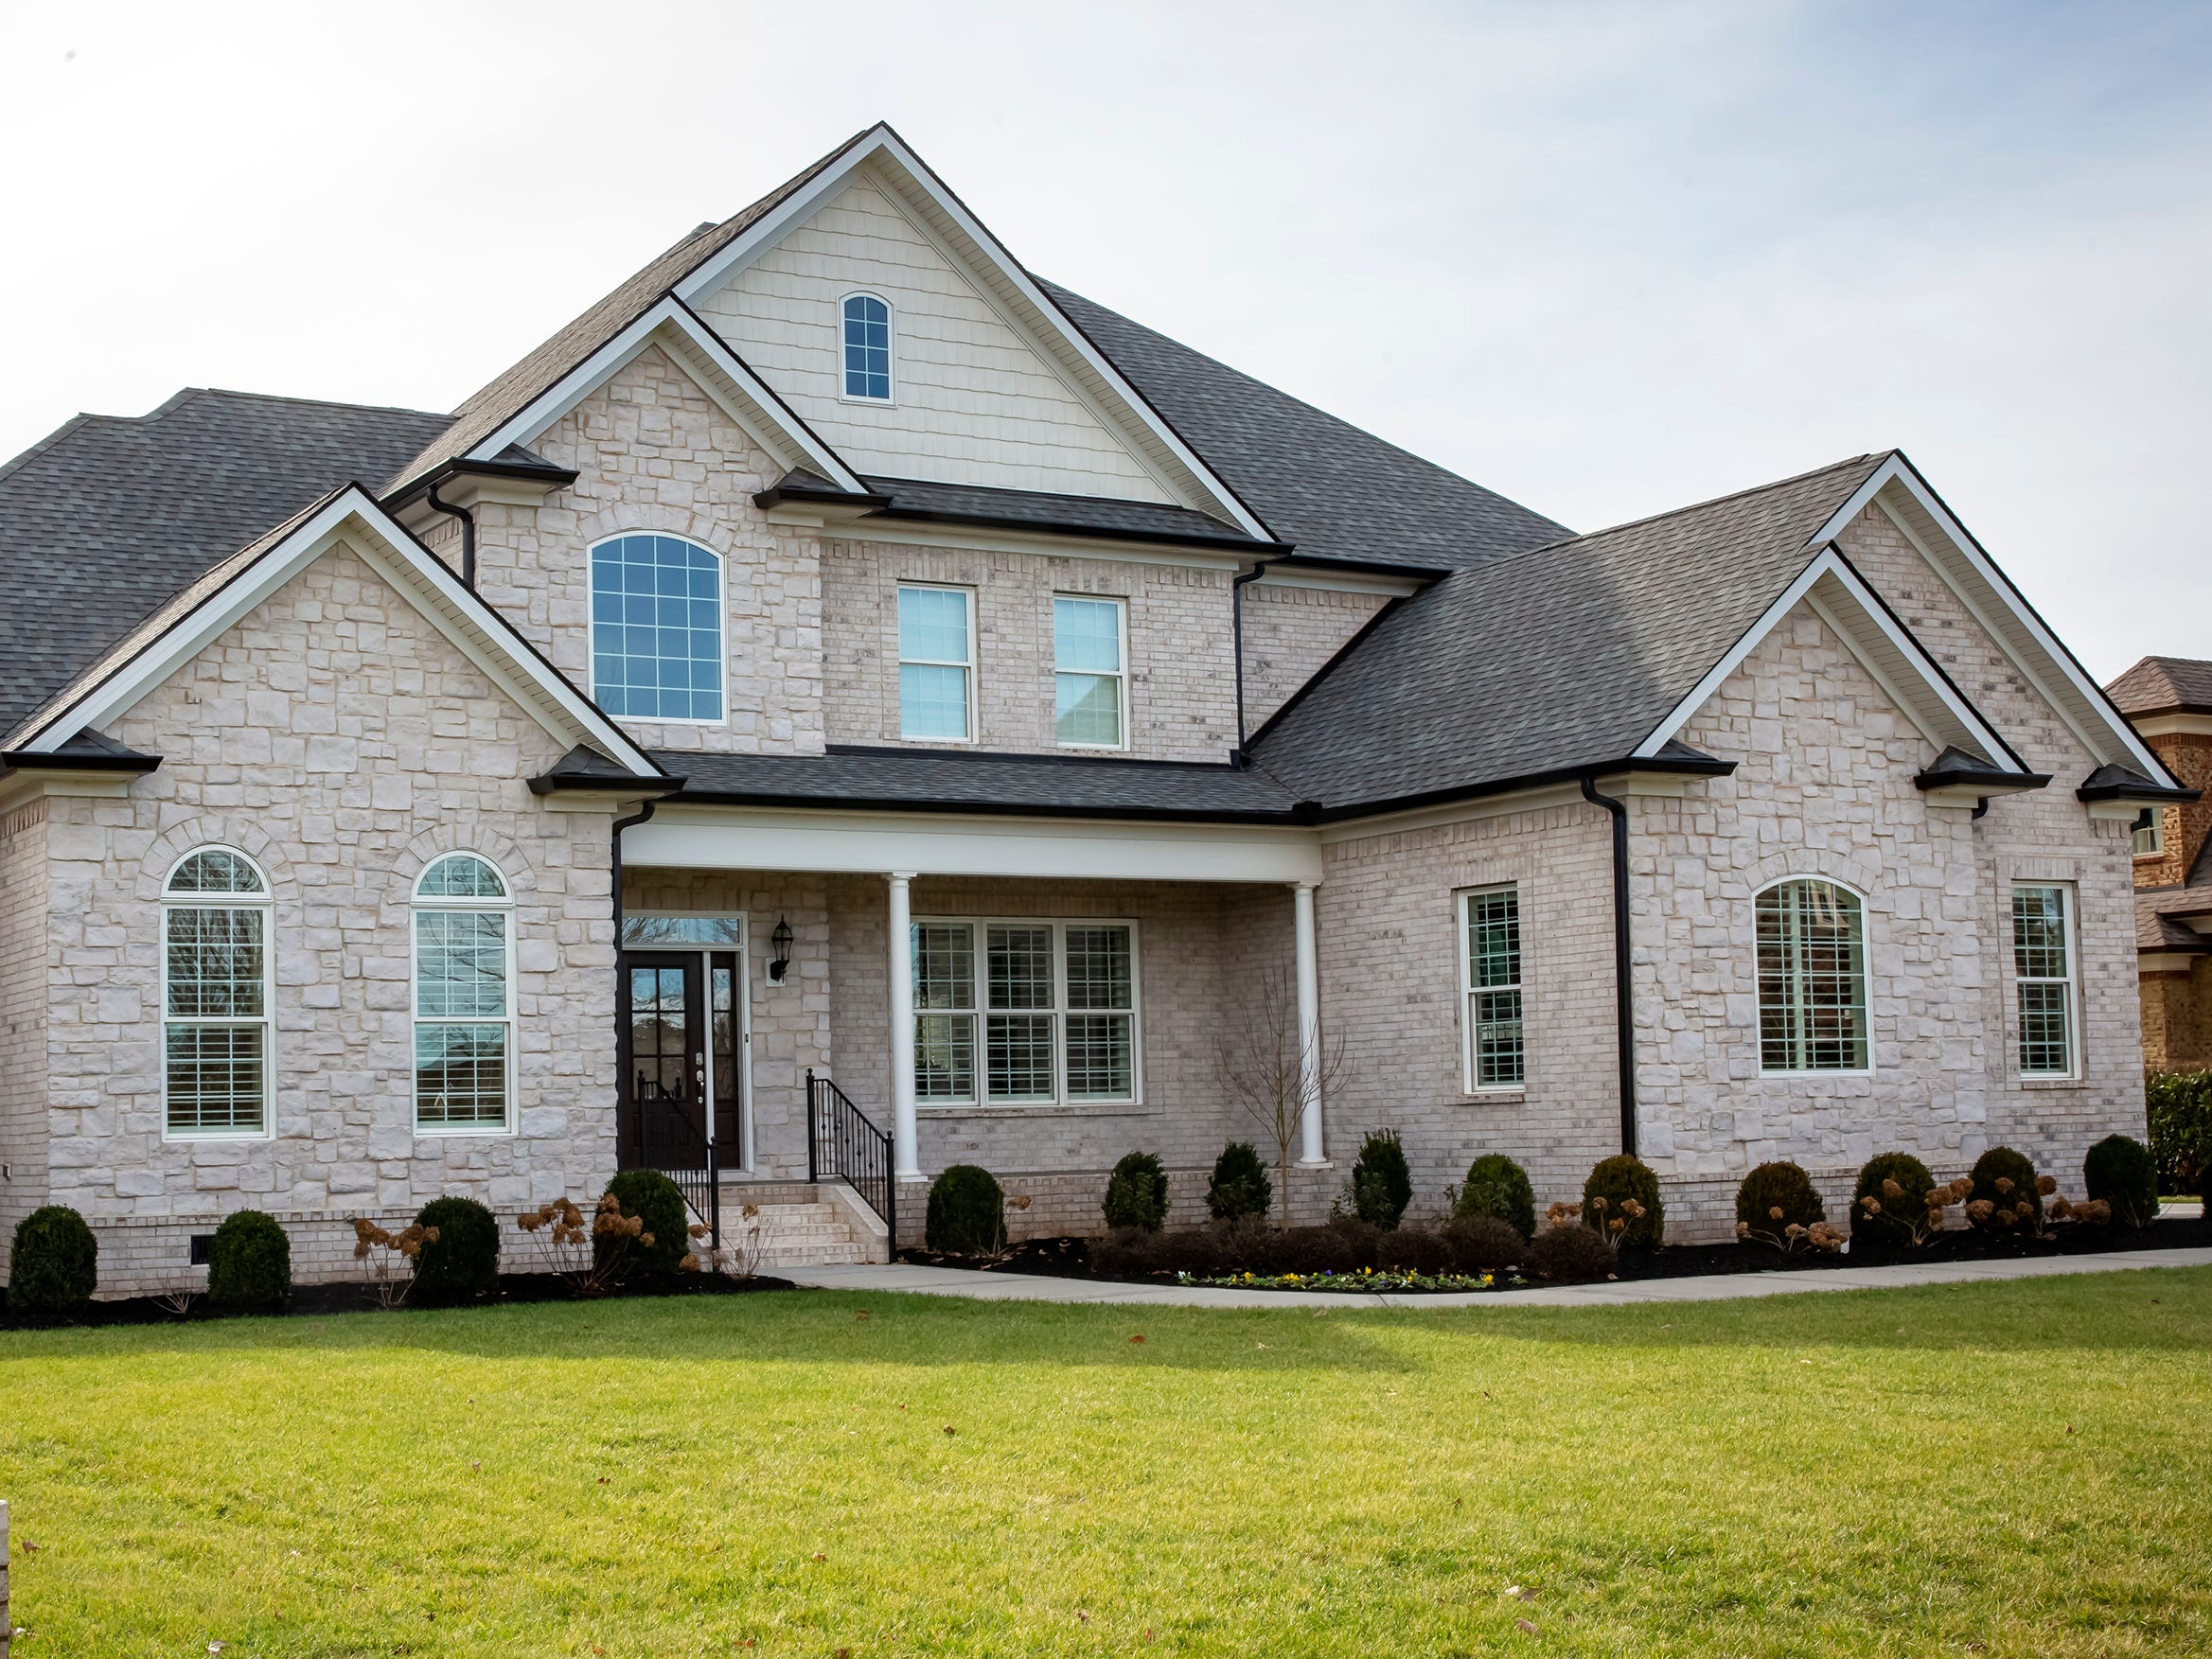 The home at 4311 Marymont Springs Blvd. in Murfreesboro sold Aug. 30, 2018.